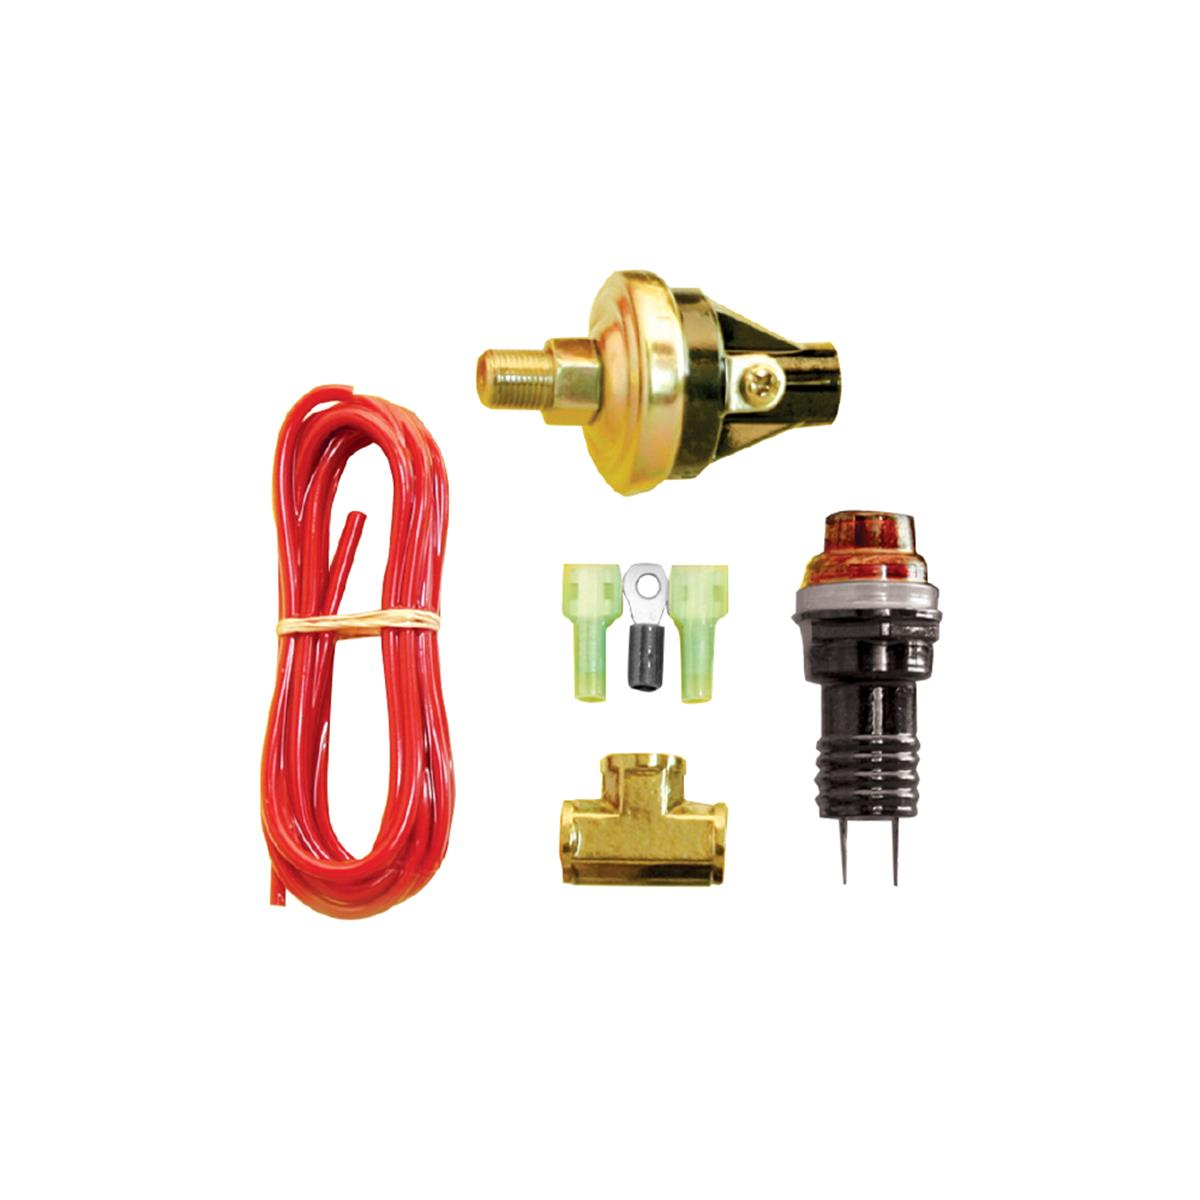 hight resolution of gagelites warning light kit 15 50 psi oil pressure 1 8 npt